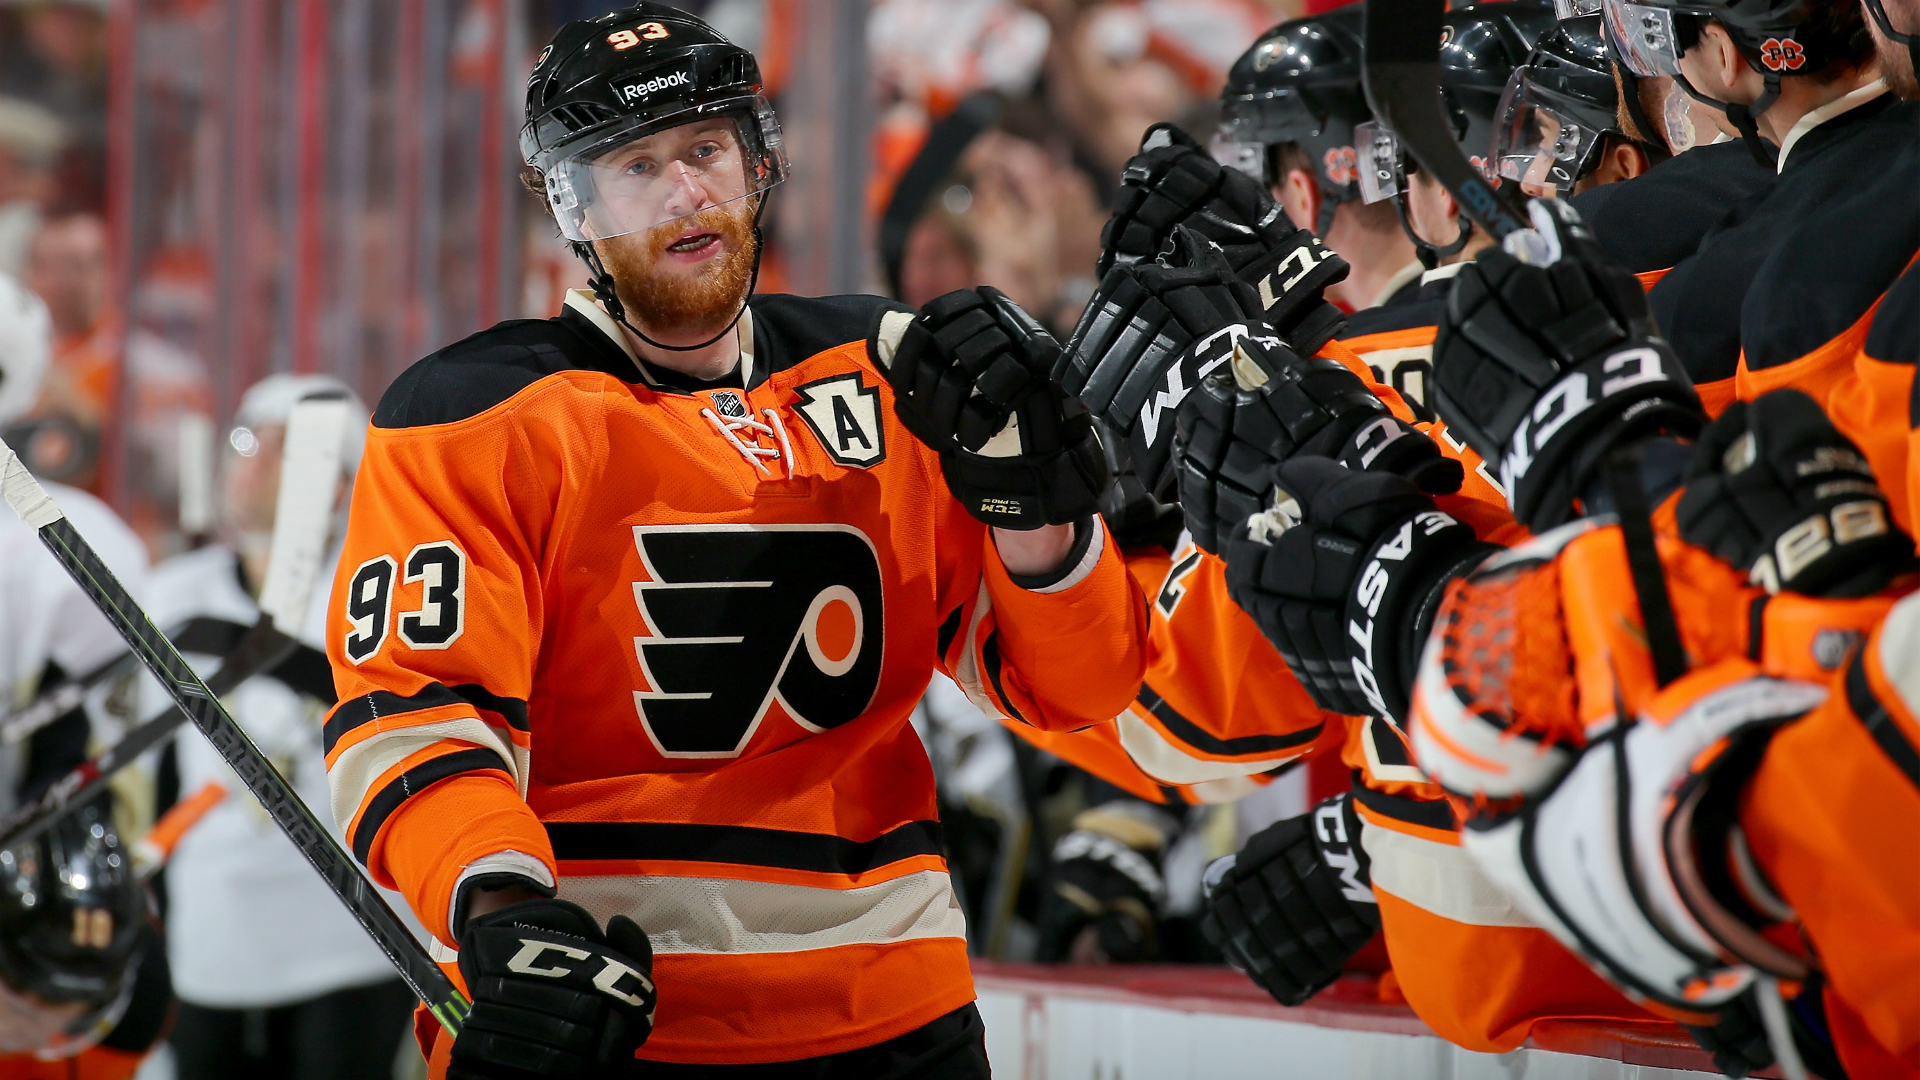 Flyers sign Jakub Voracek to 8-year extension worth reported $66M